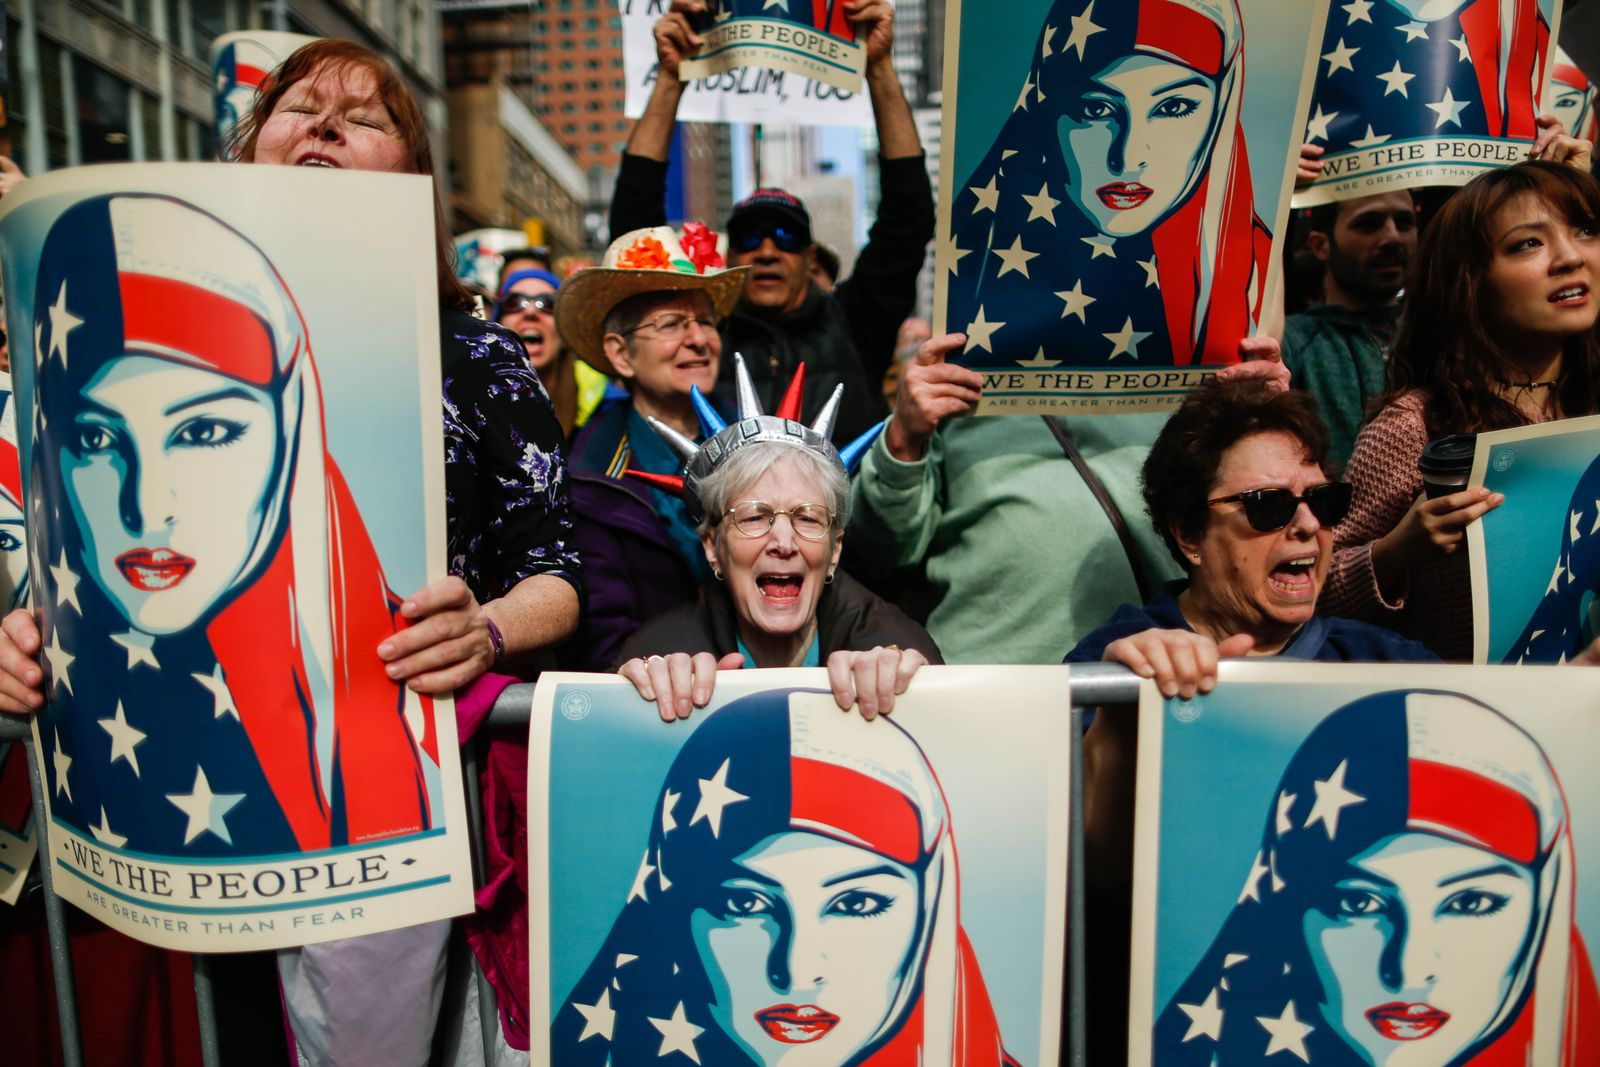 US-ACTIVISTS-GATHER-IN-TIMES-SQUARE-IN-DAY-OF-SOLIDARITY-WITH-AM